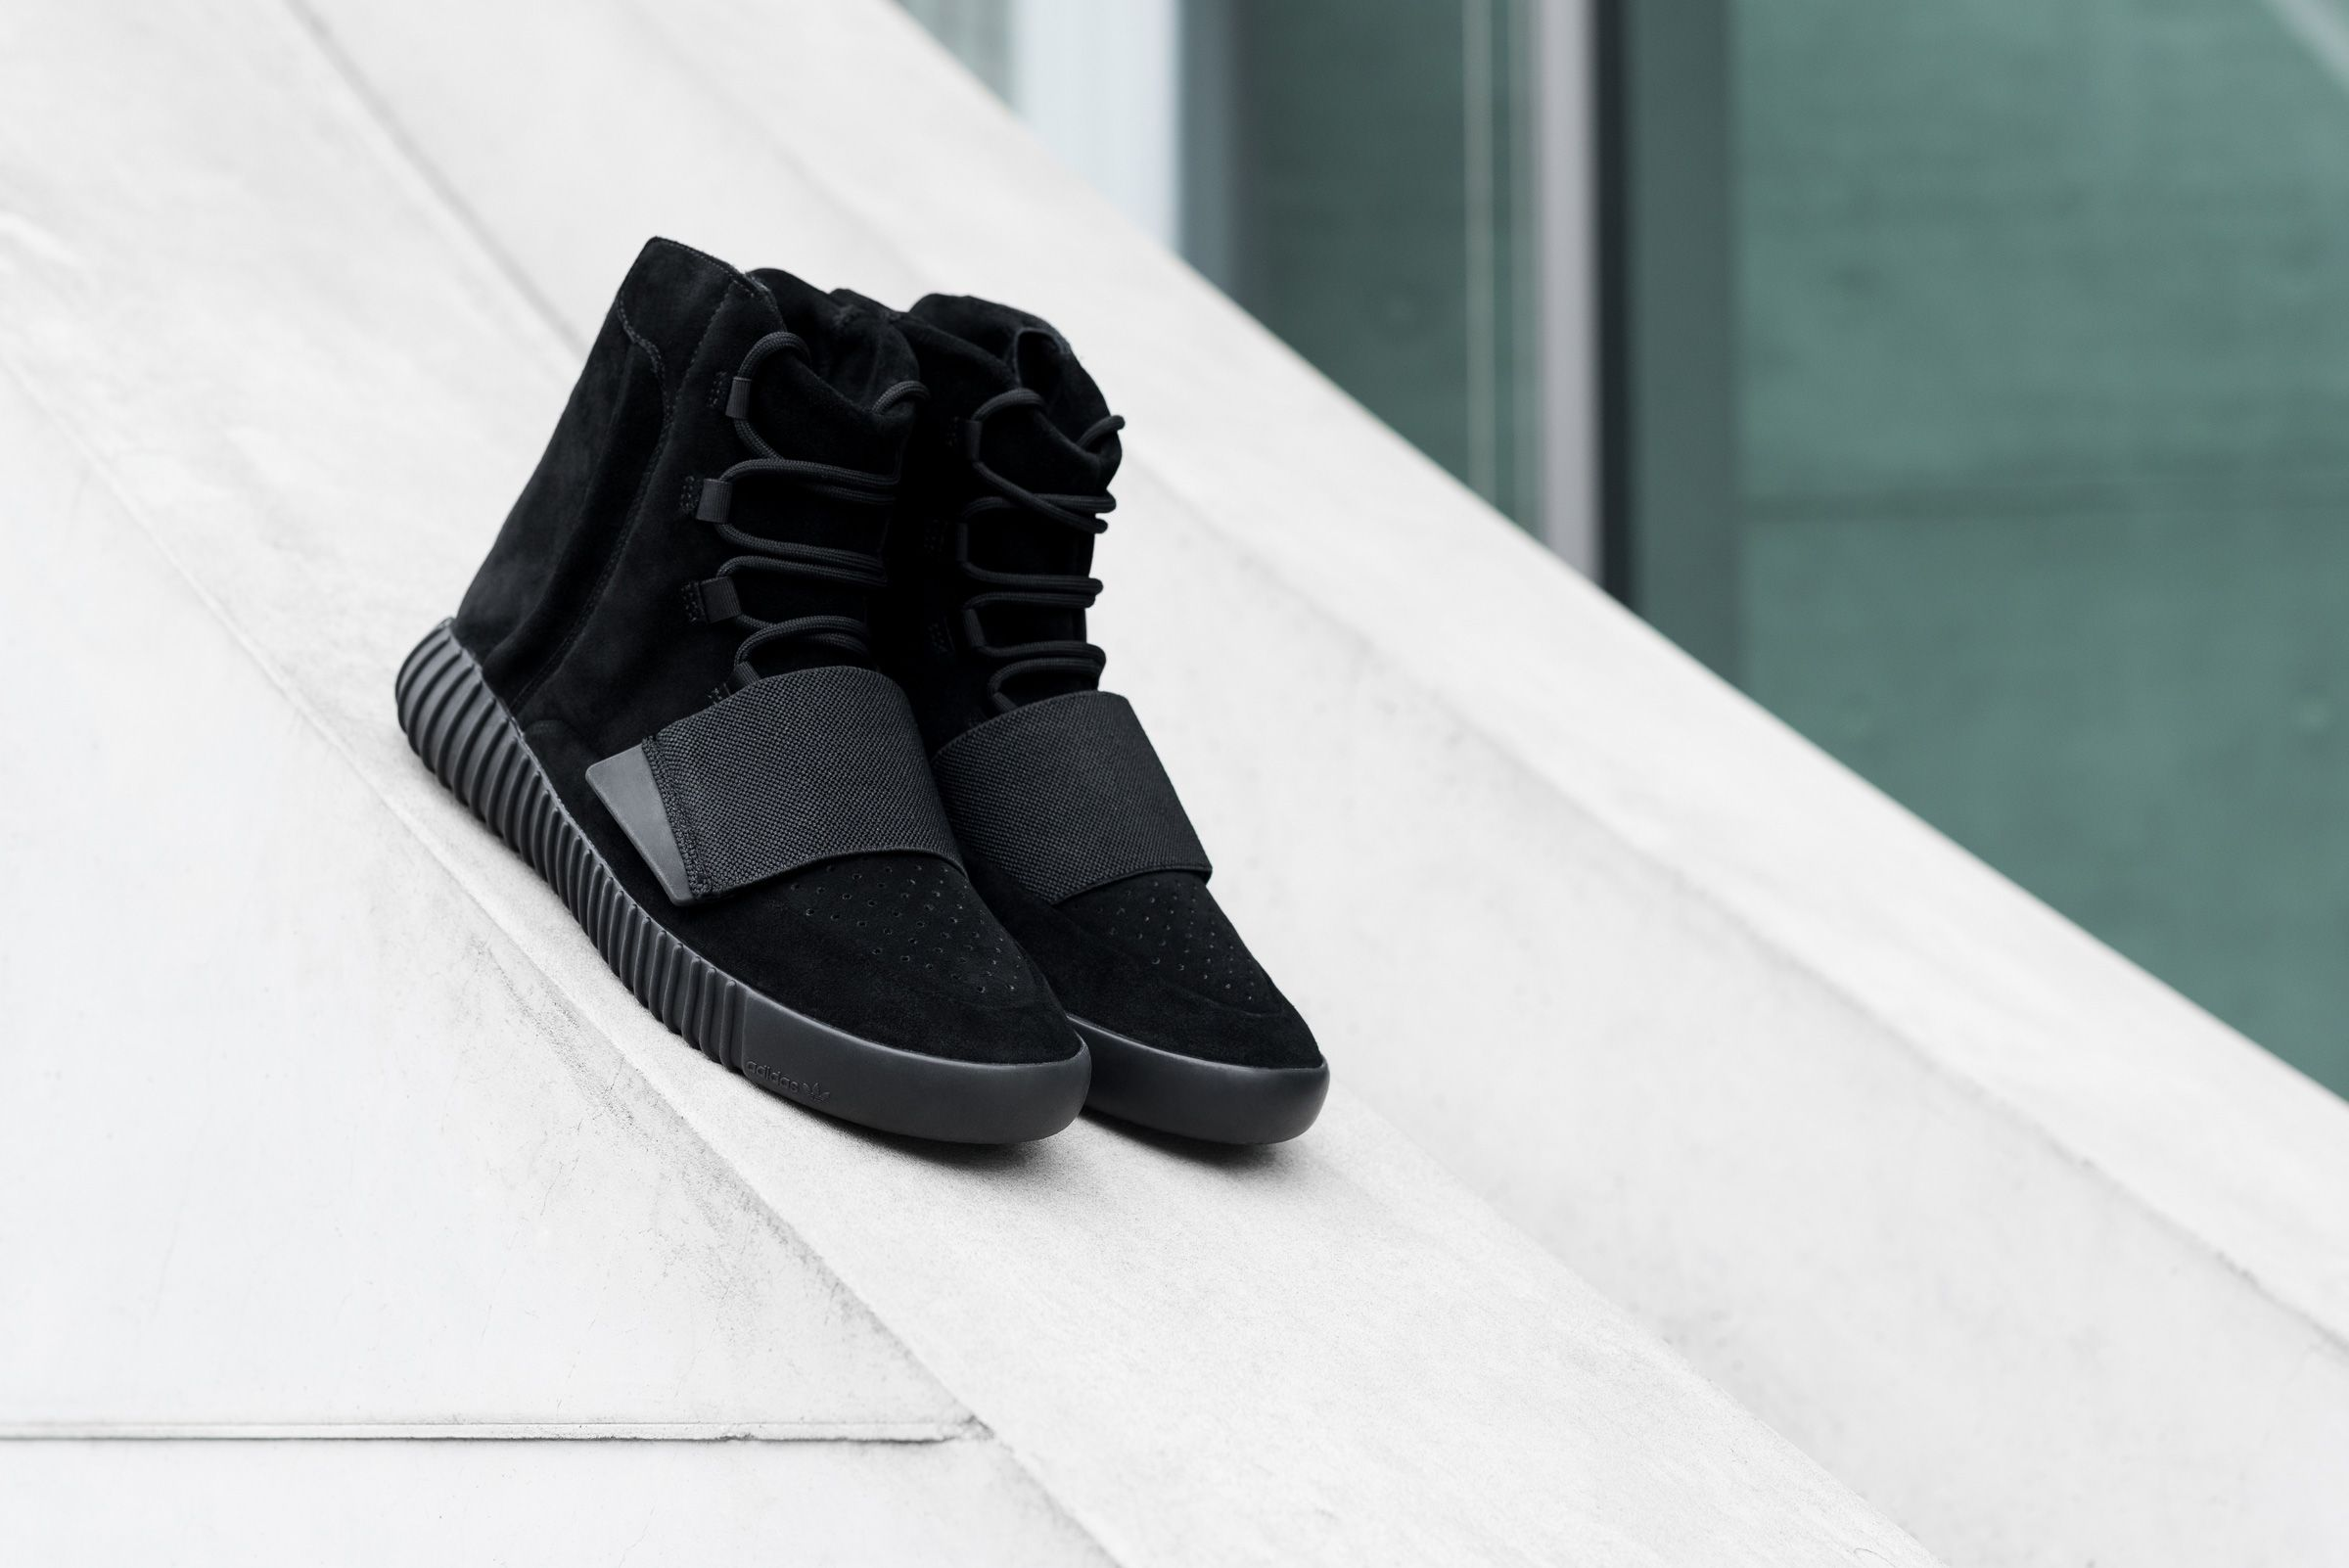 adidas yeezy 750 boost black adidas.com adidas superstar 80s rose gold